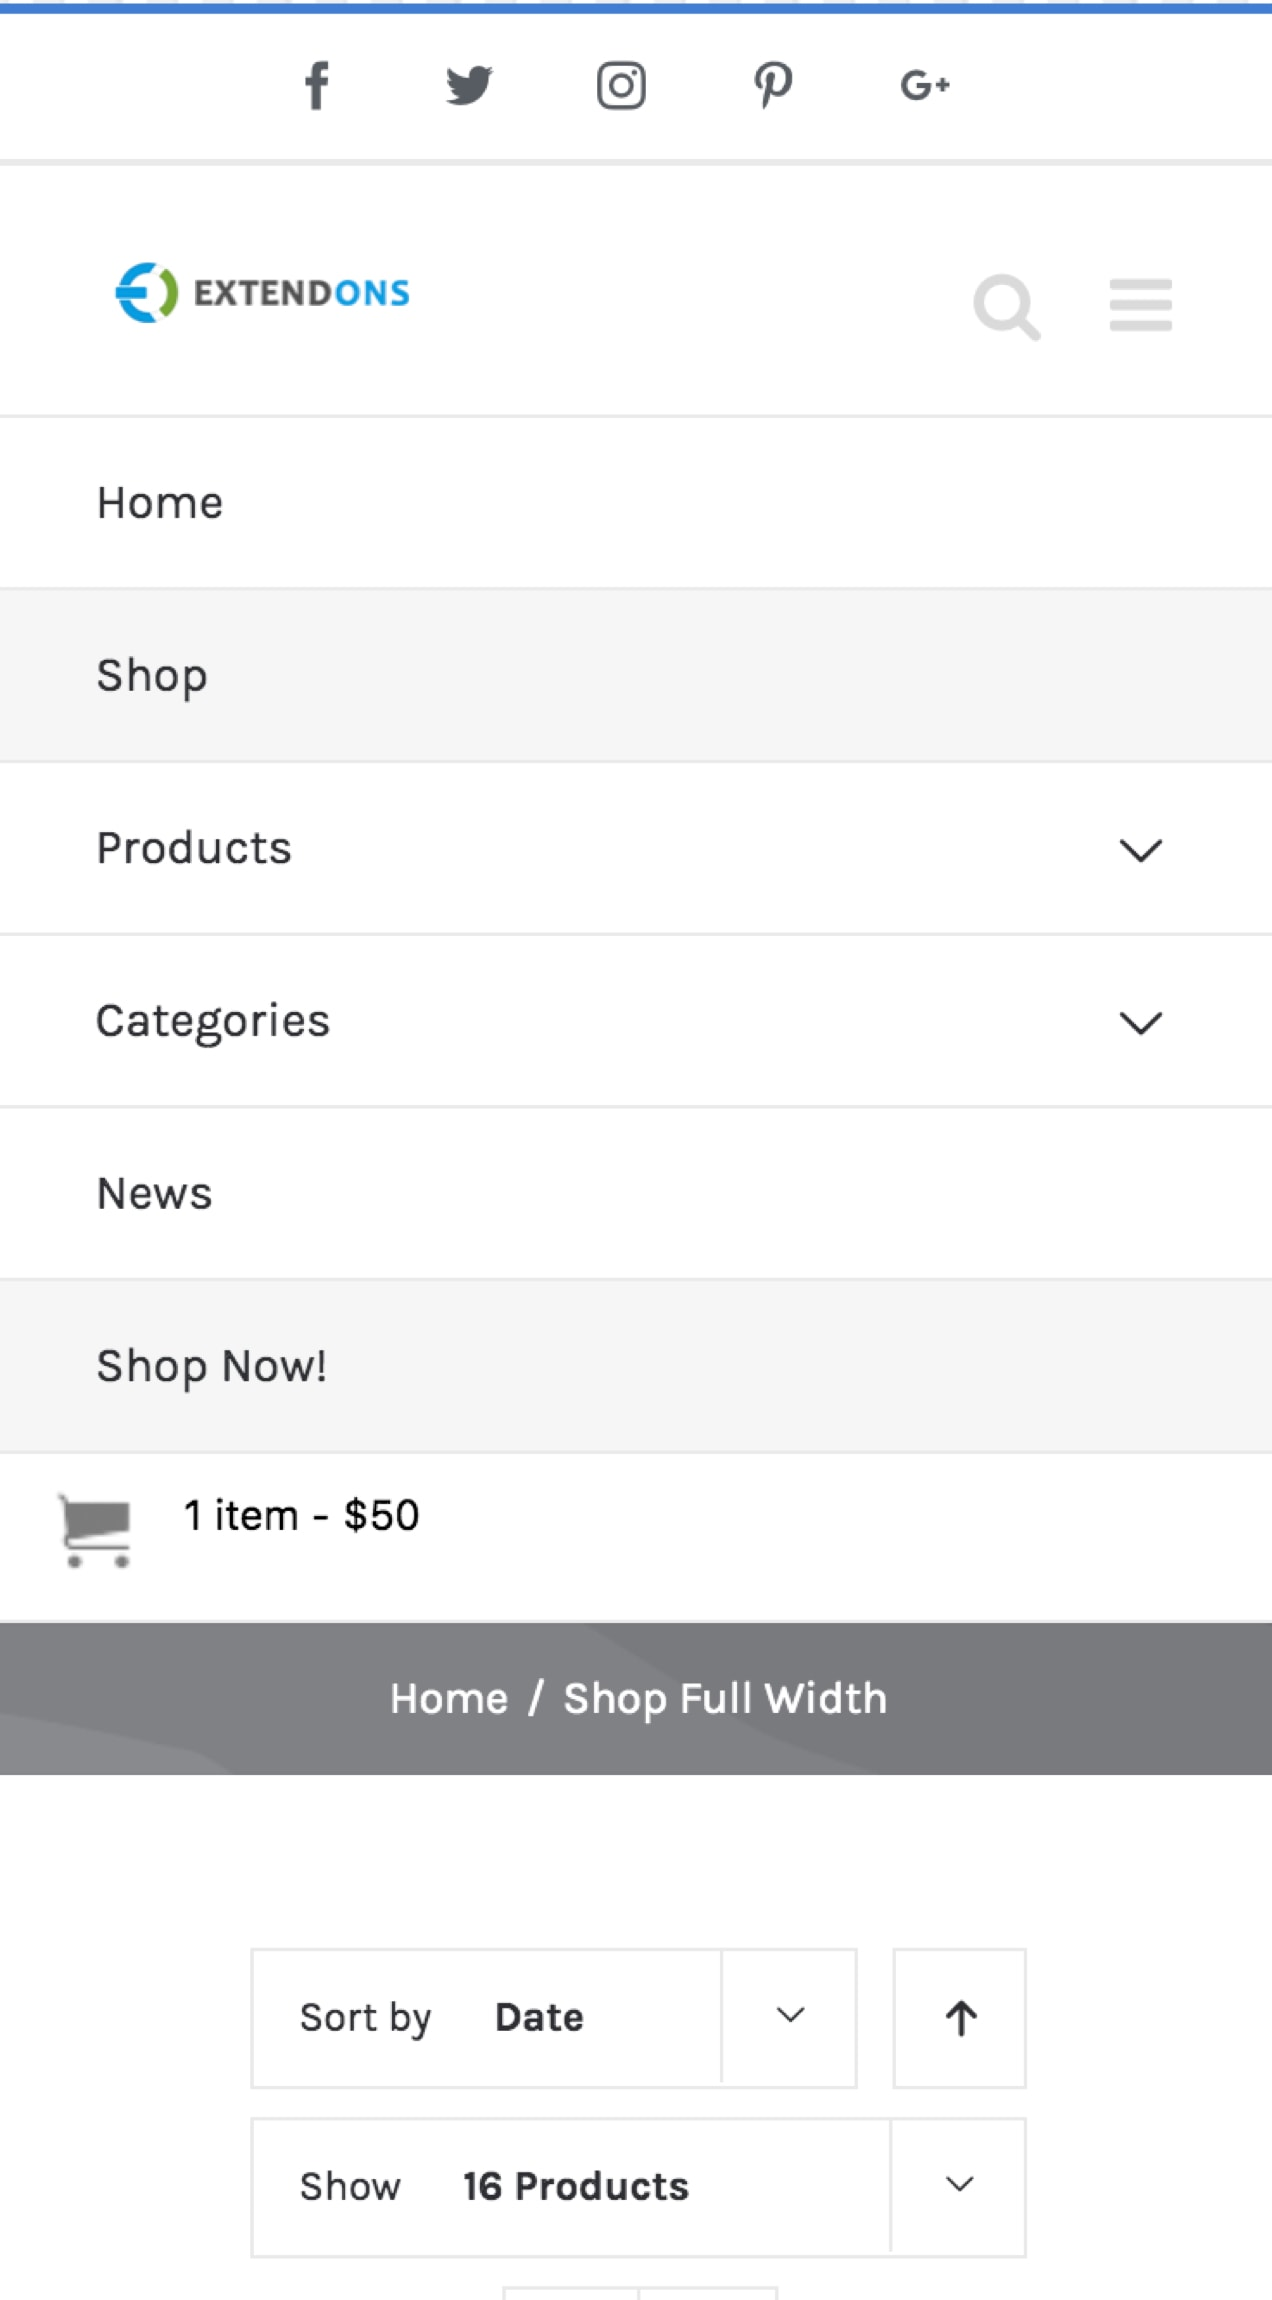 The Mini Cart extension in action, showing a mobile menu